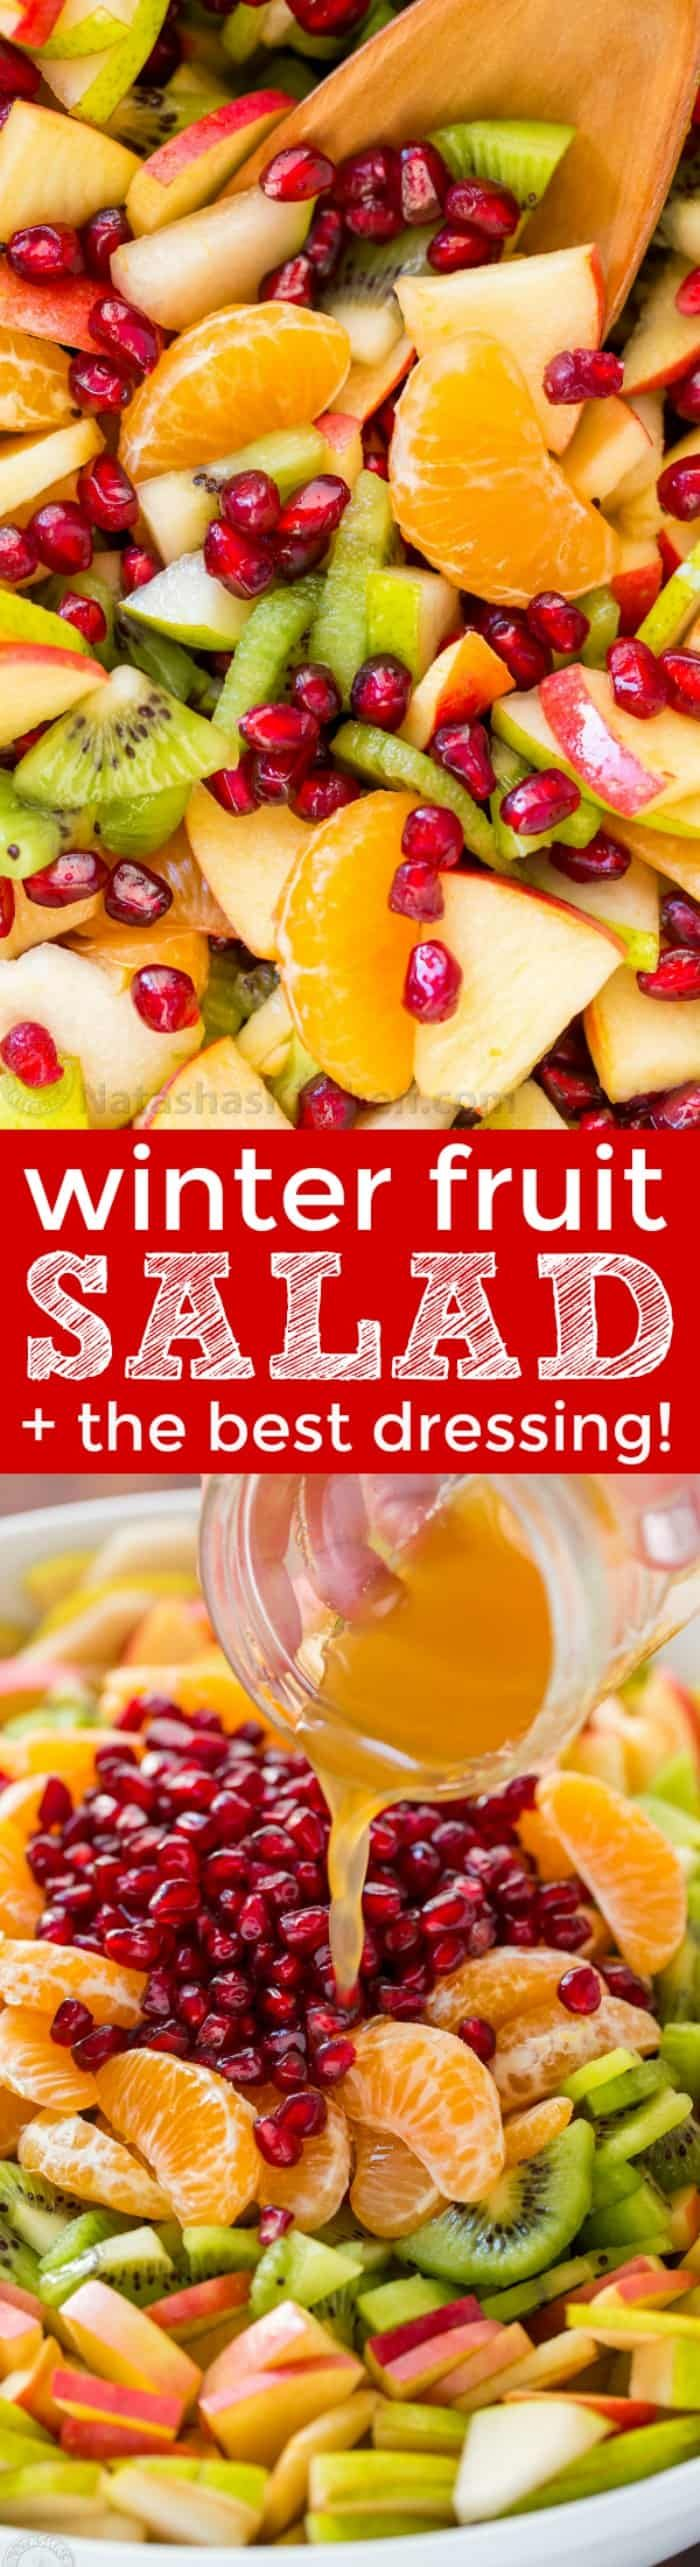 Winter fruit salad is refreshing and loaded with the best fruits of winter. The lemon-lime-honey syrup is lip-smacking good! You'll be running for refills! | natashaskitchen.com #fruitsalad #winterfruitsalad #autumnfruitsalad